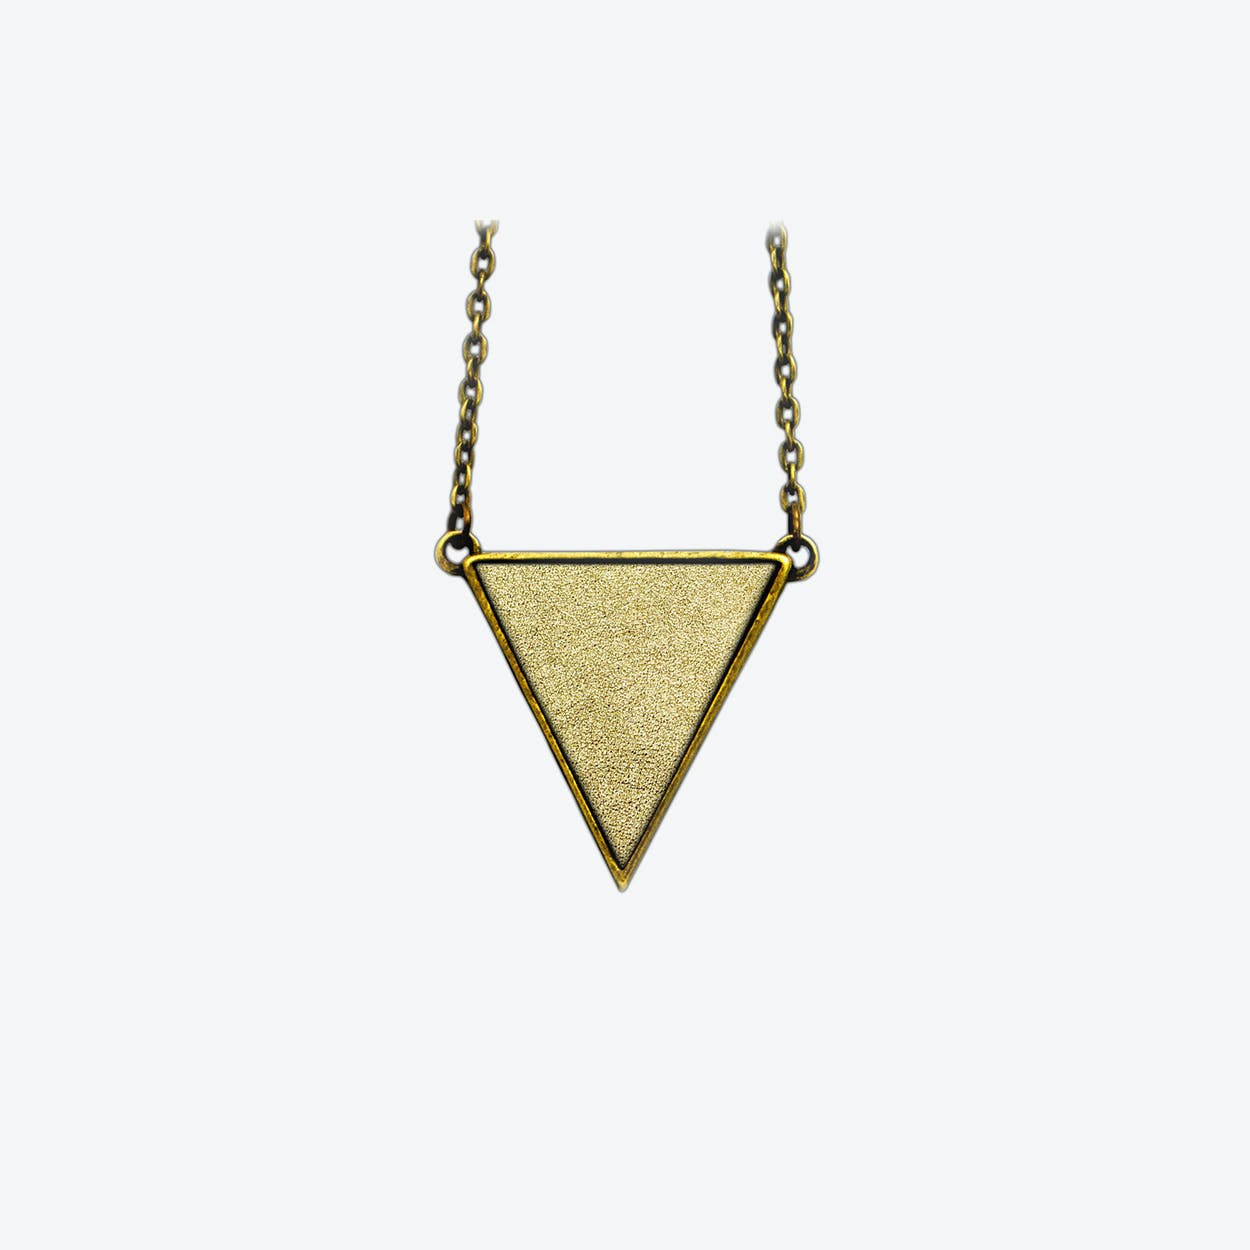 Leather Triangle Necklace in Sunrise Gold